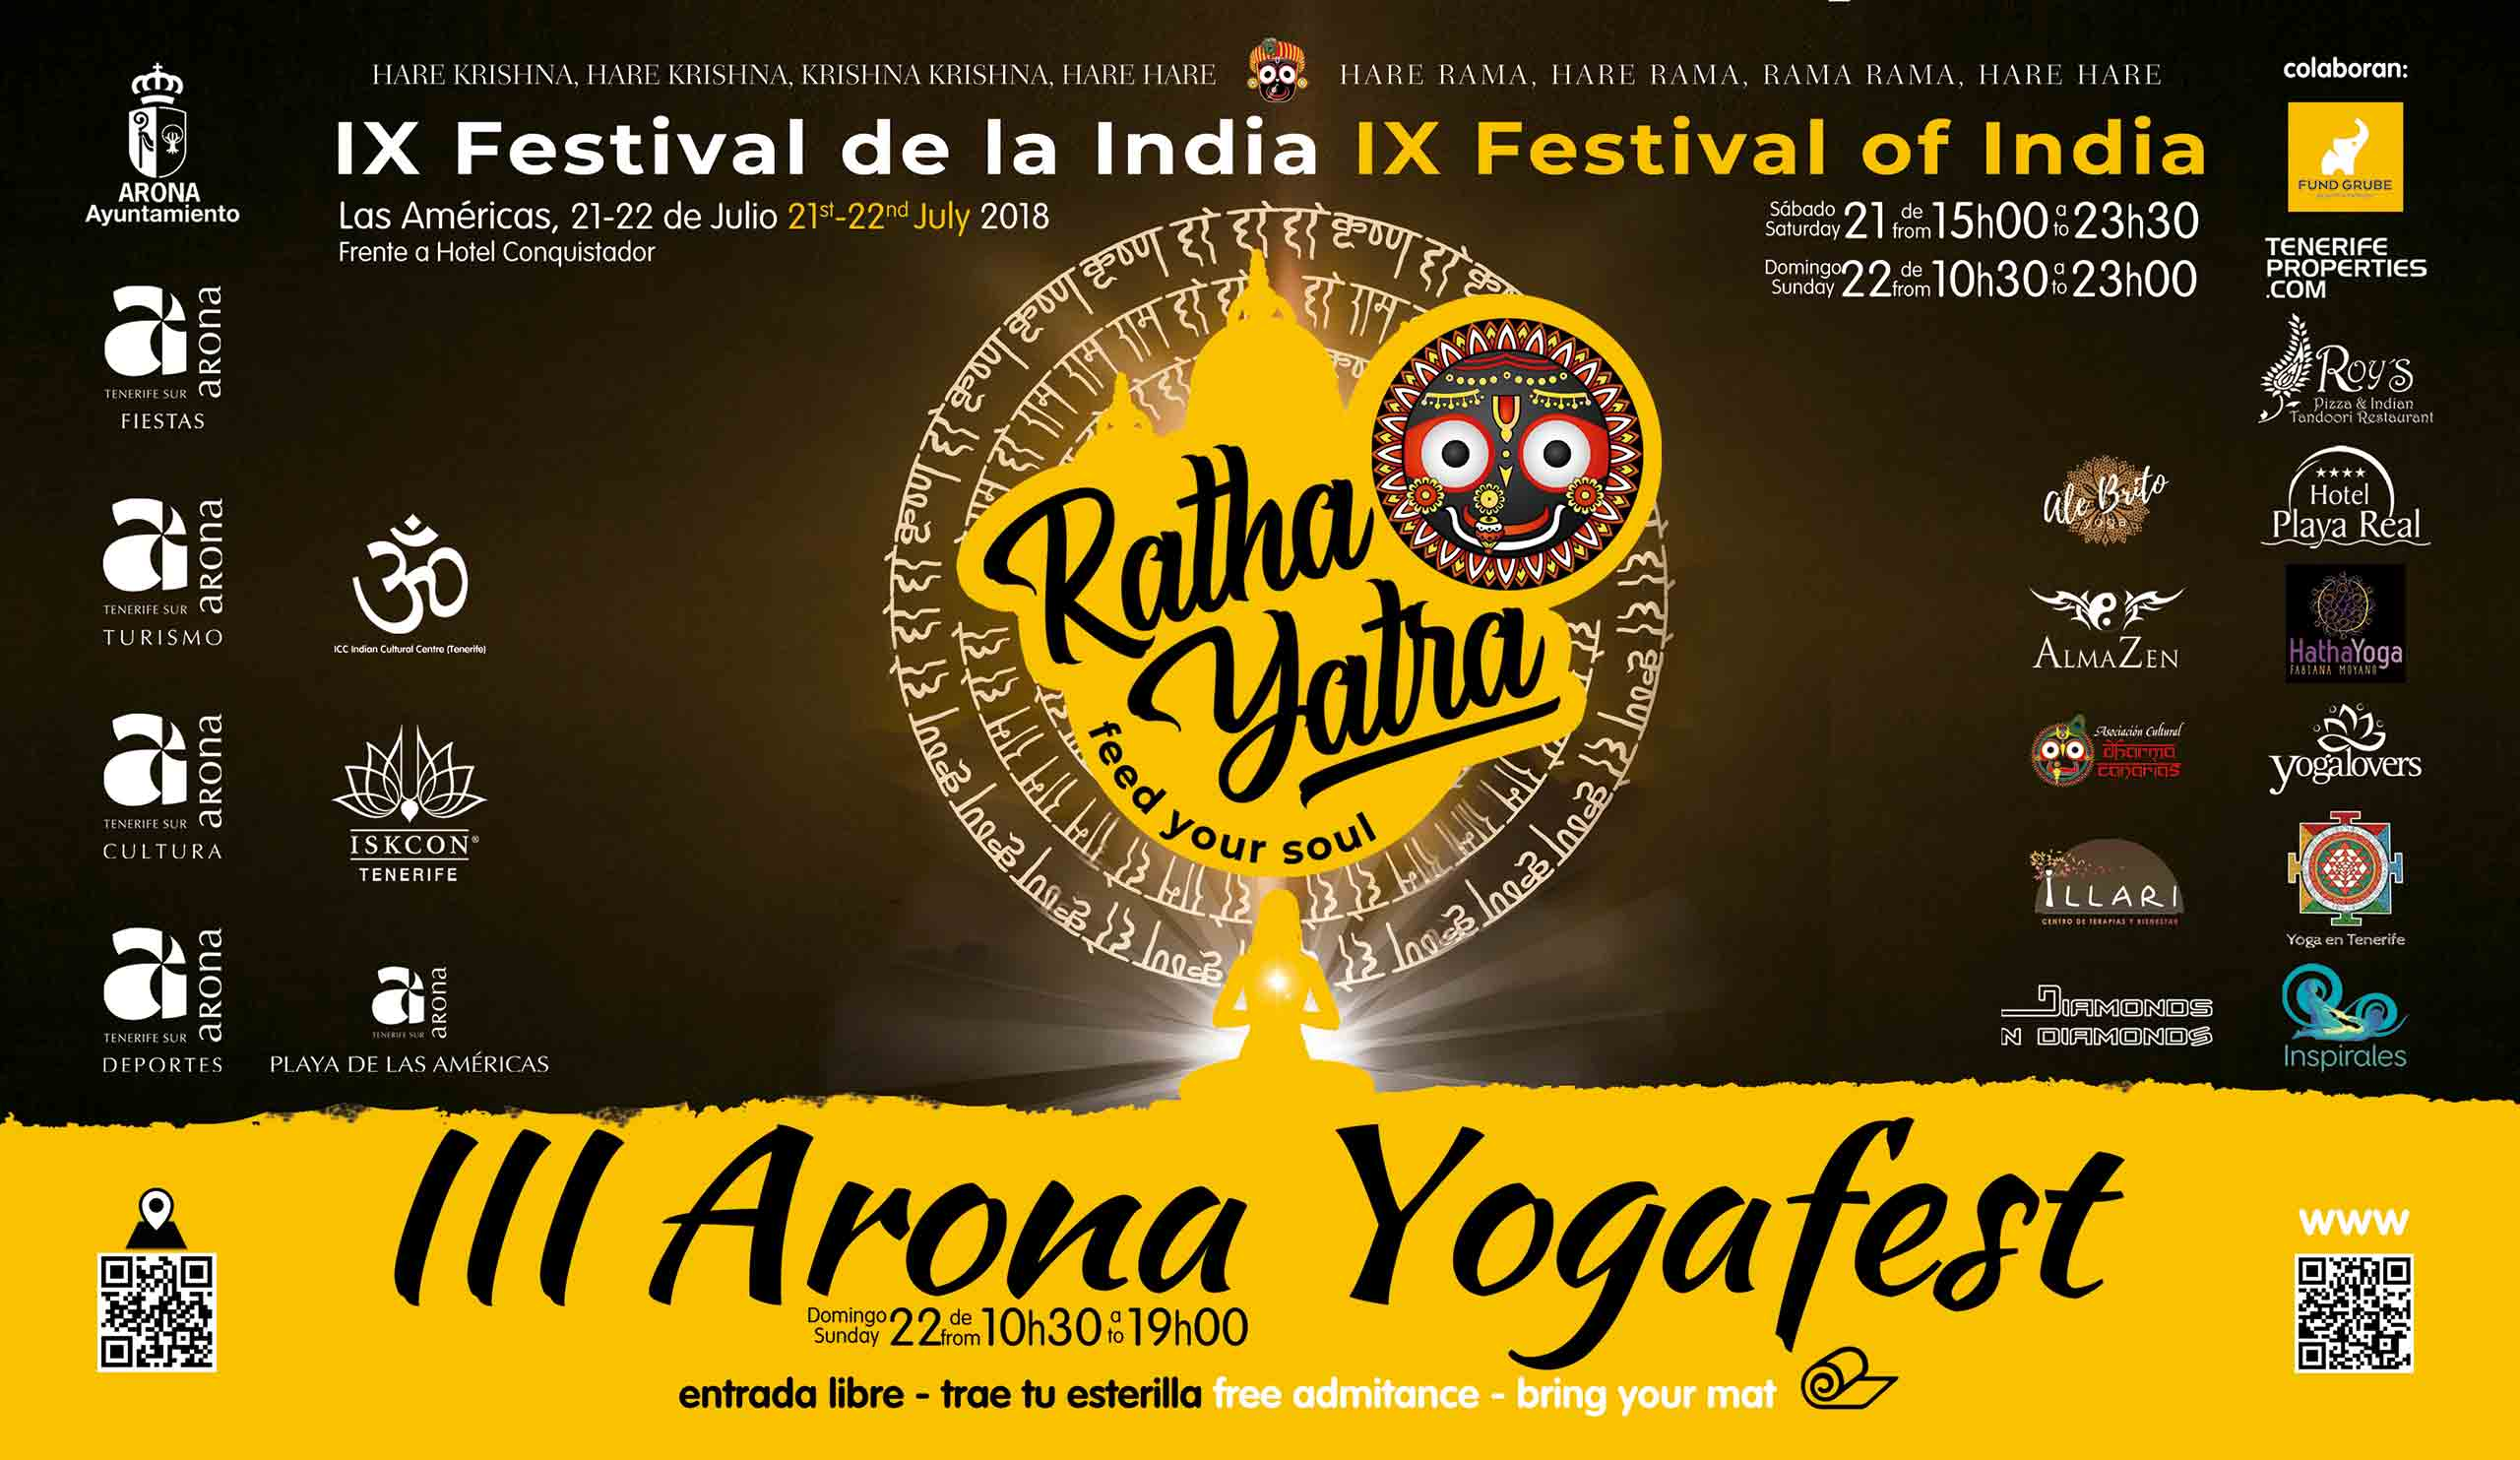 Program of Ratha Yatra Festival in Playa de Las Américas on July 21 & 22, 2018